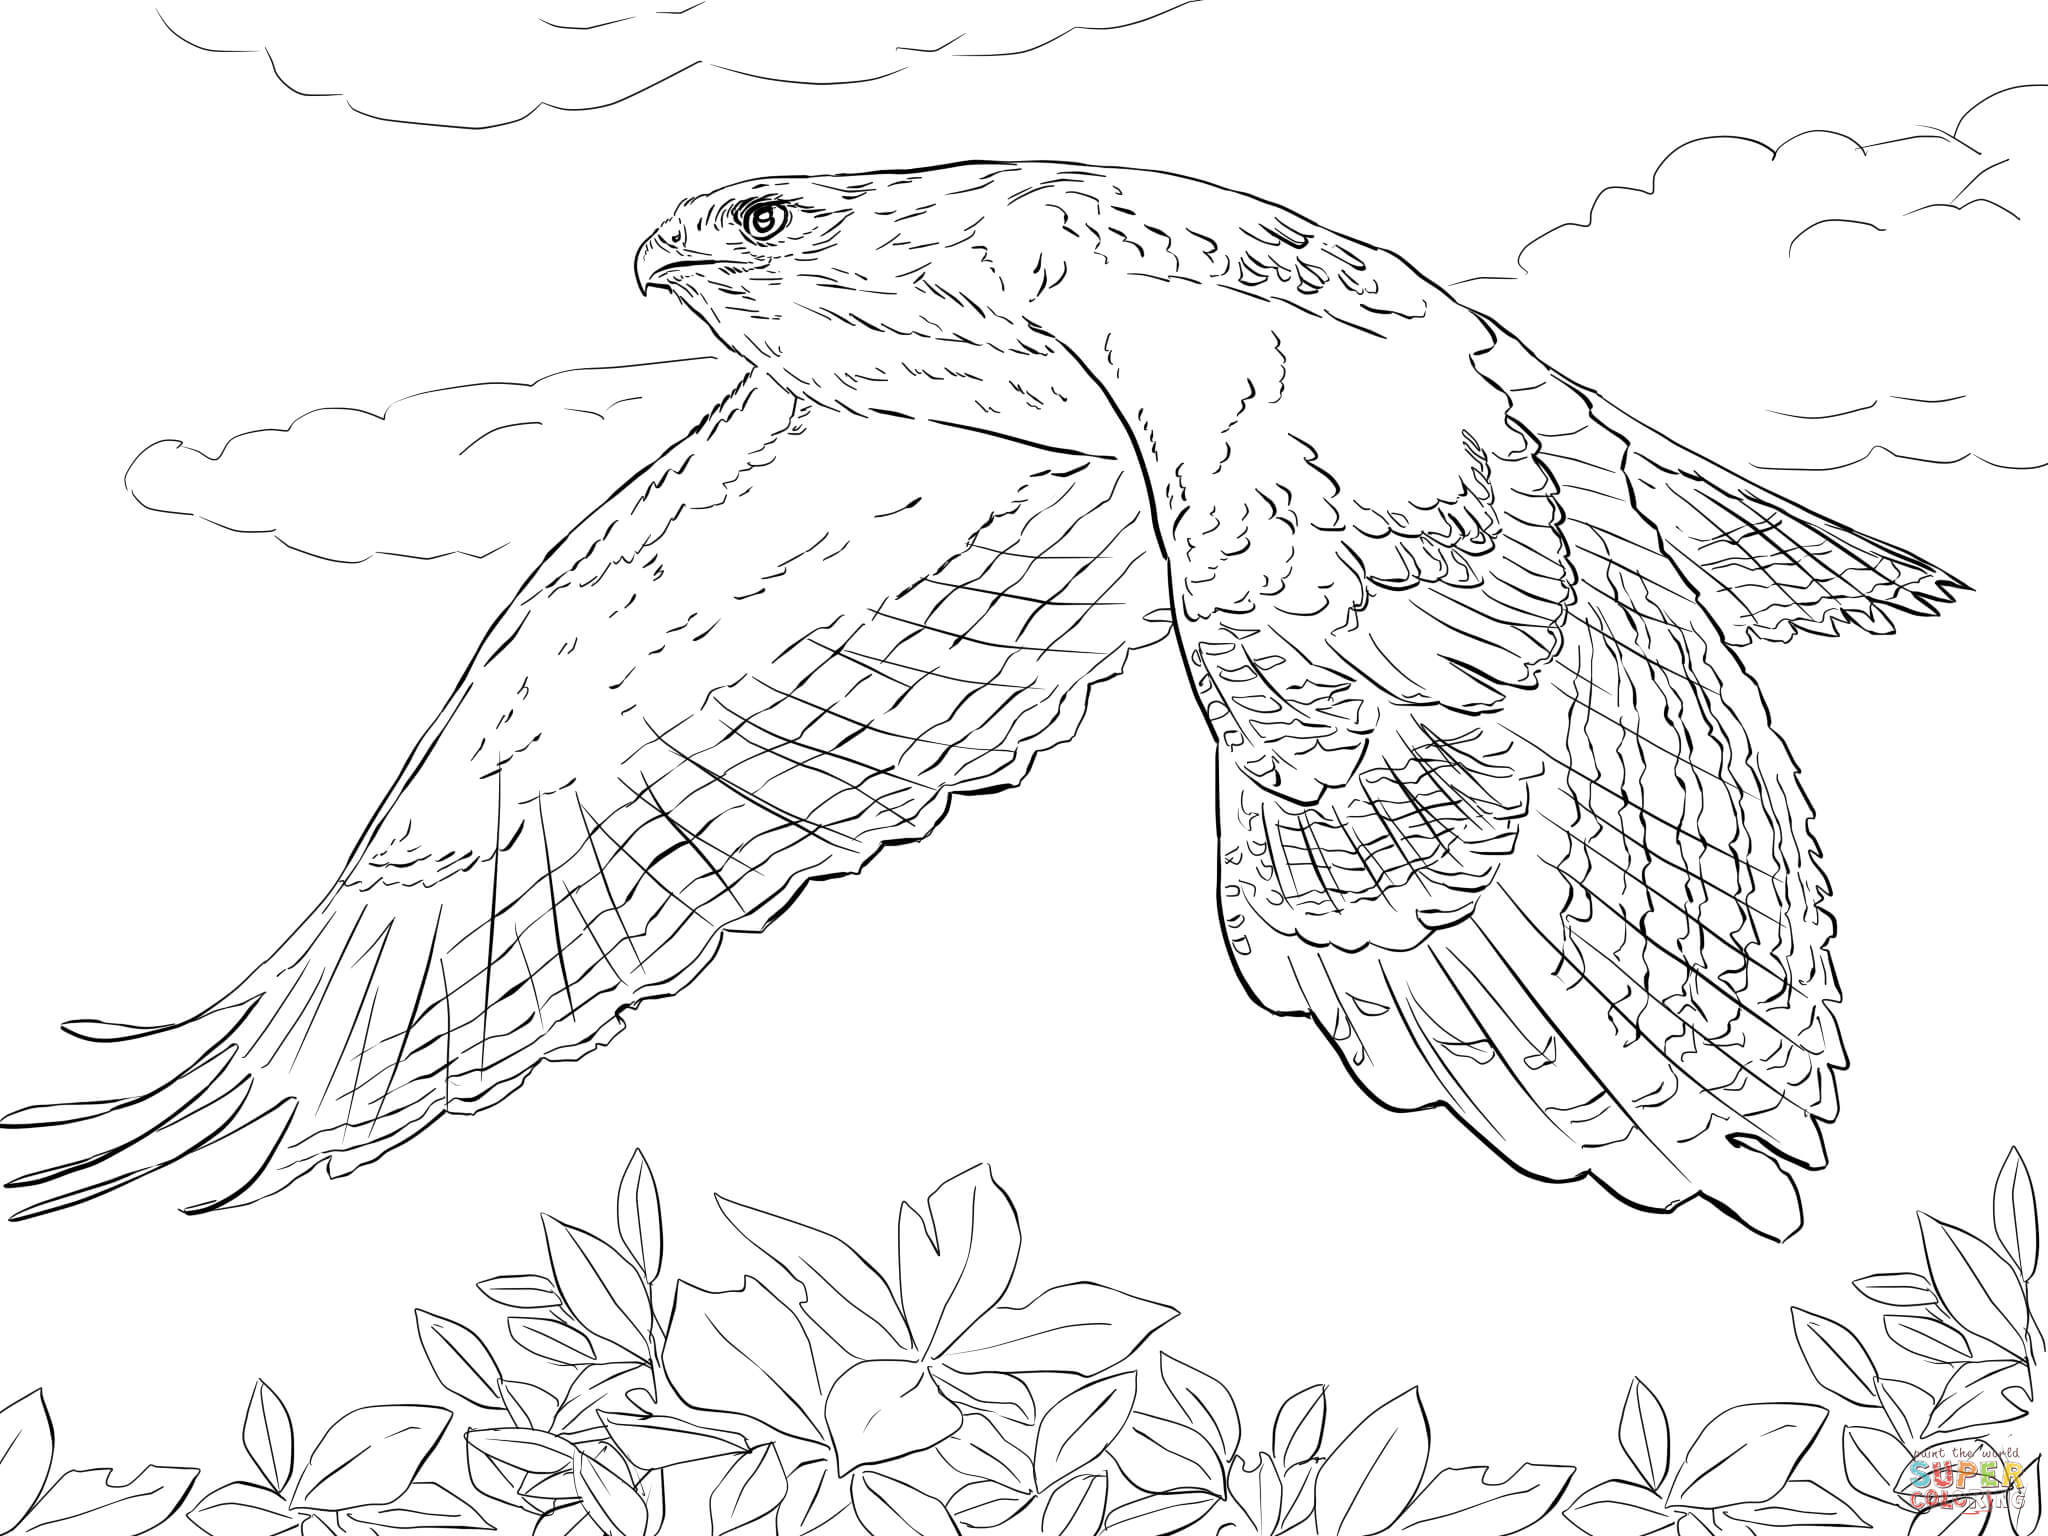 hawk-coloring-page-0001-q1